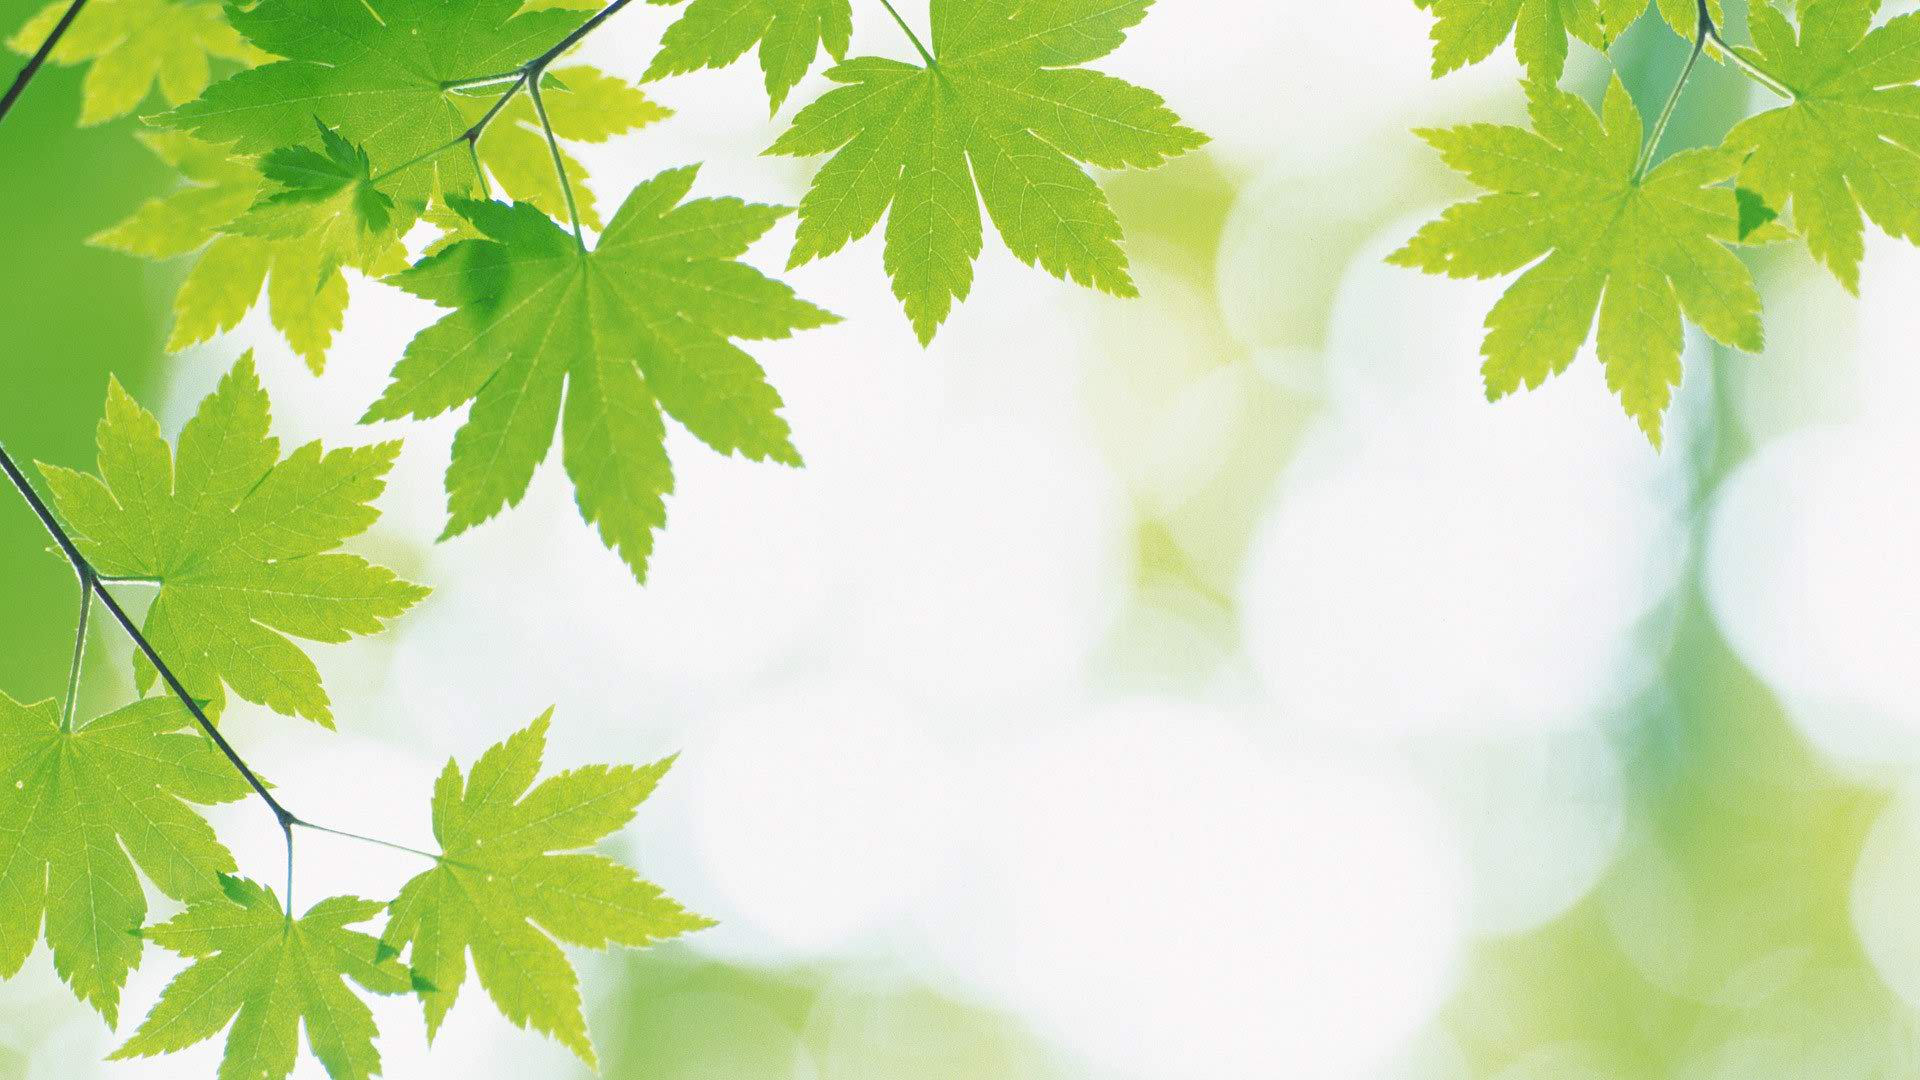 Fresh Backgrounds Download picture of a green and white 1920x1080